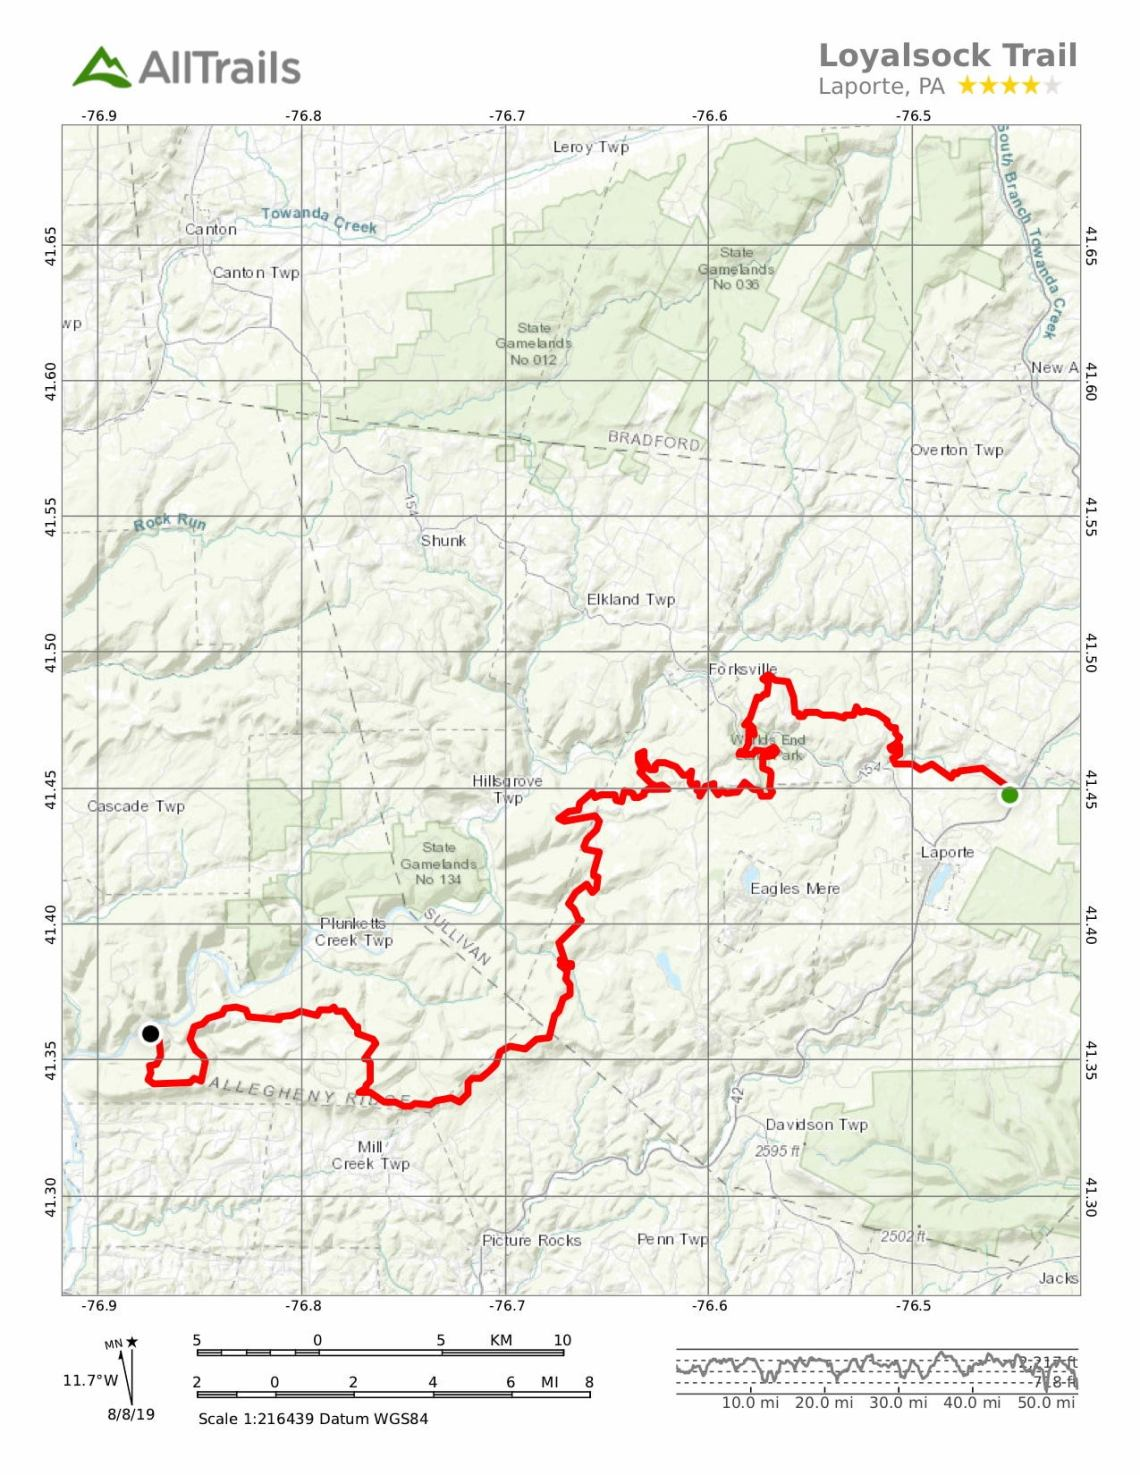 Map of the Loyalsock Trail from All Trails.